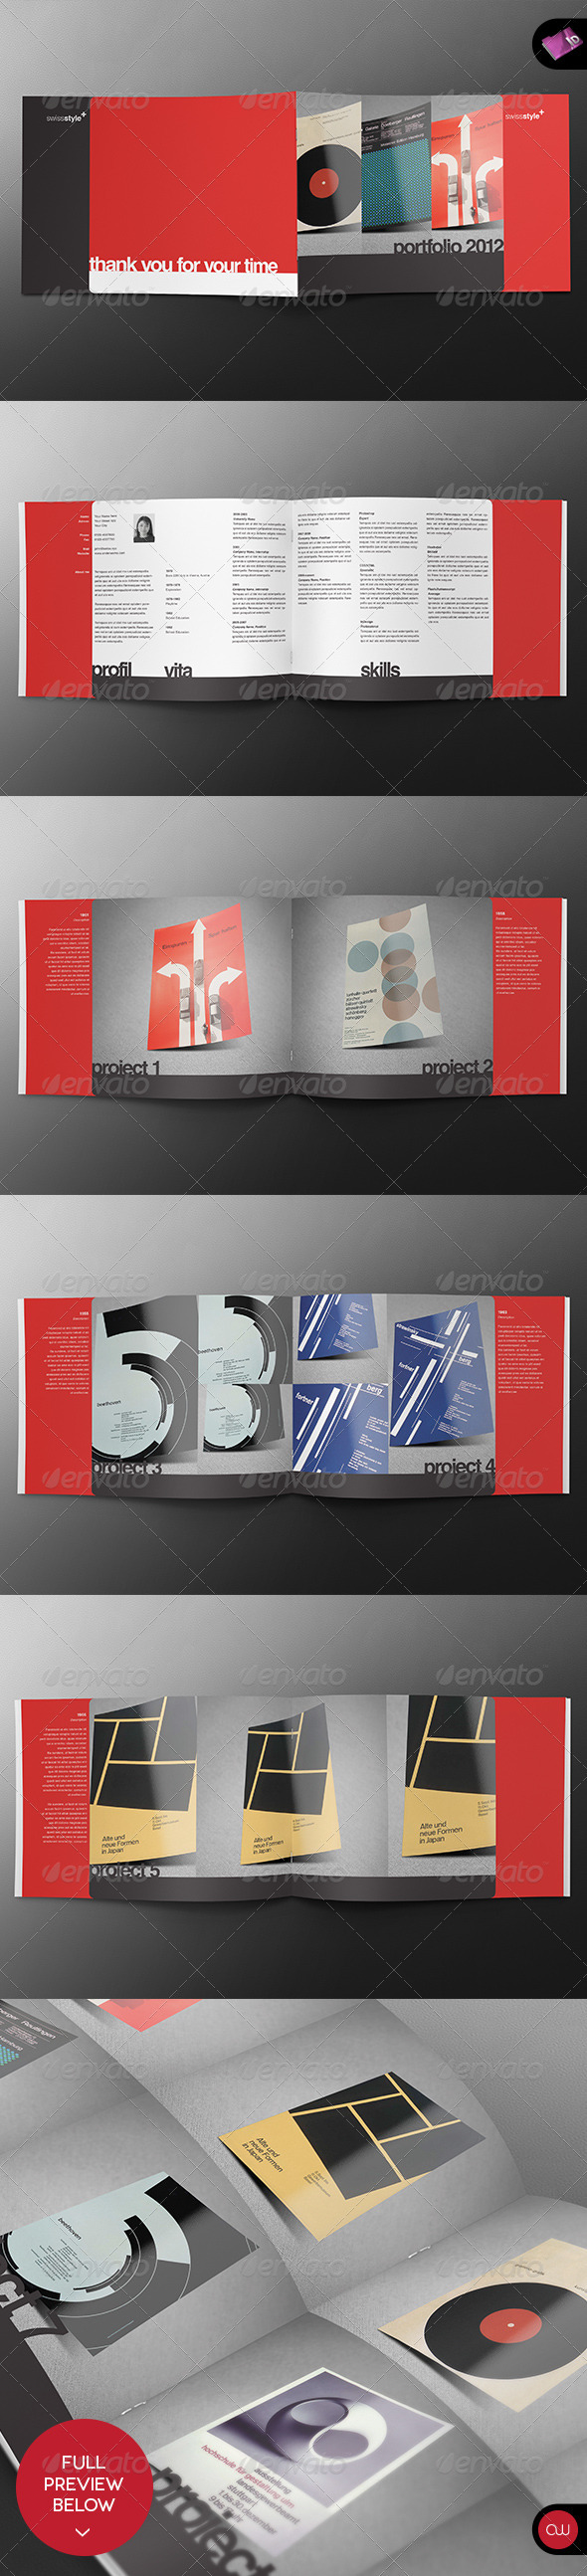 Swiss Brochure Template - Vol.1 - Portfolio Brochures